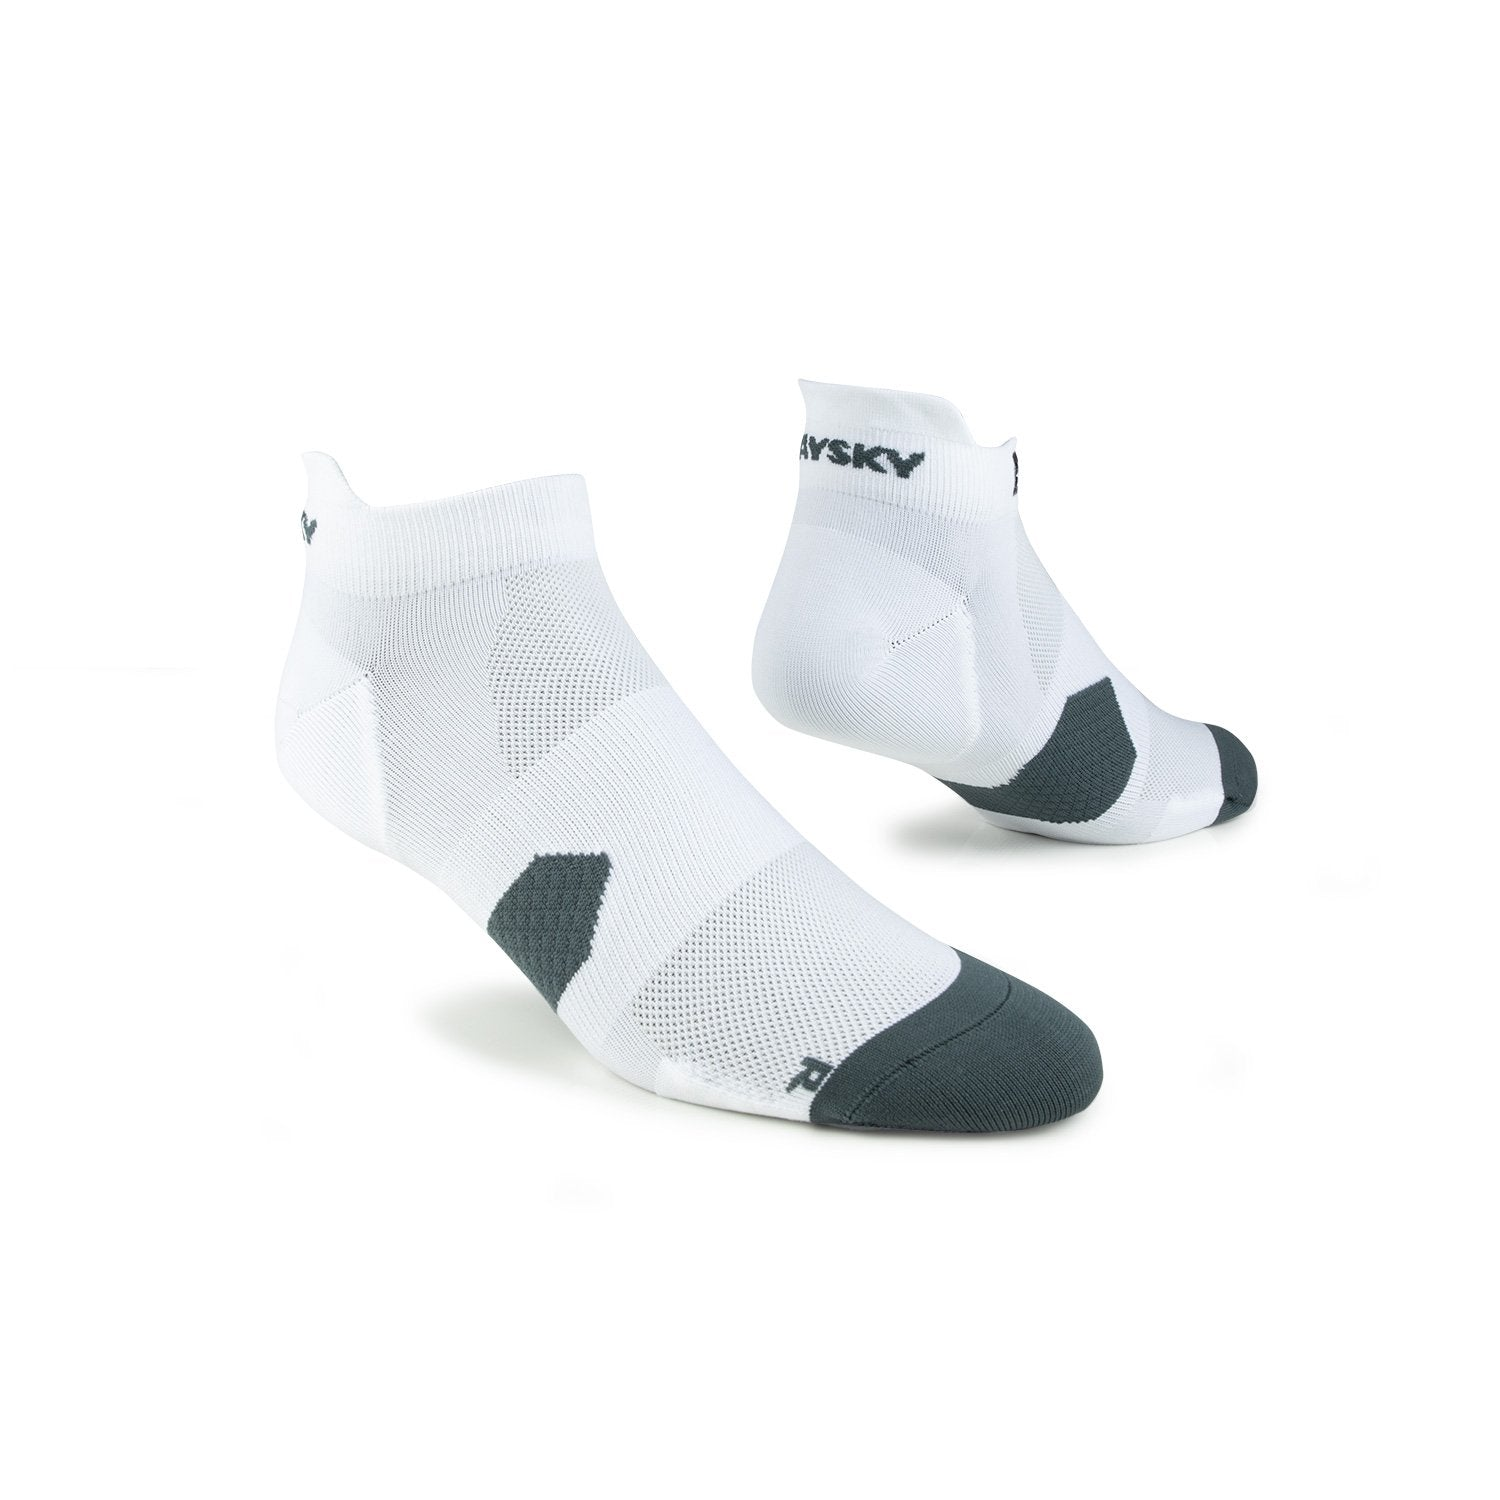 Saysky | Low Socks - White